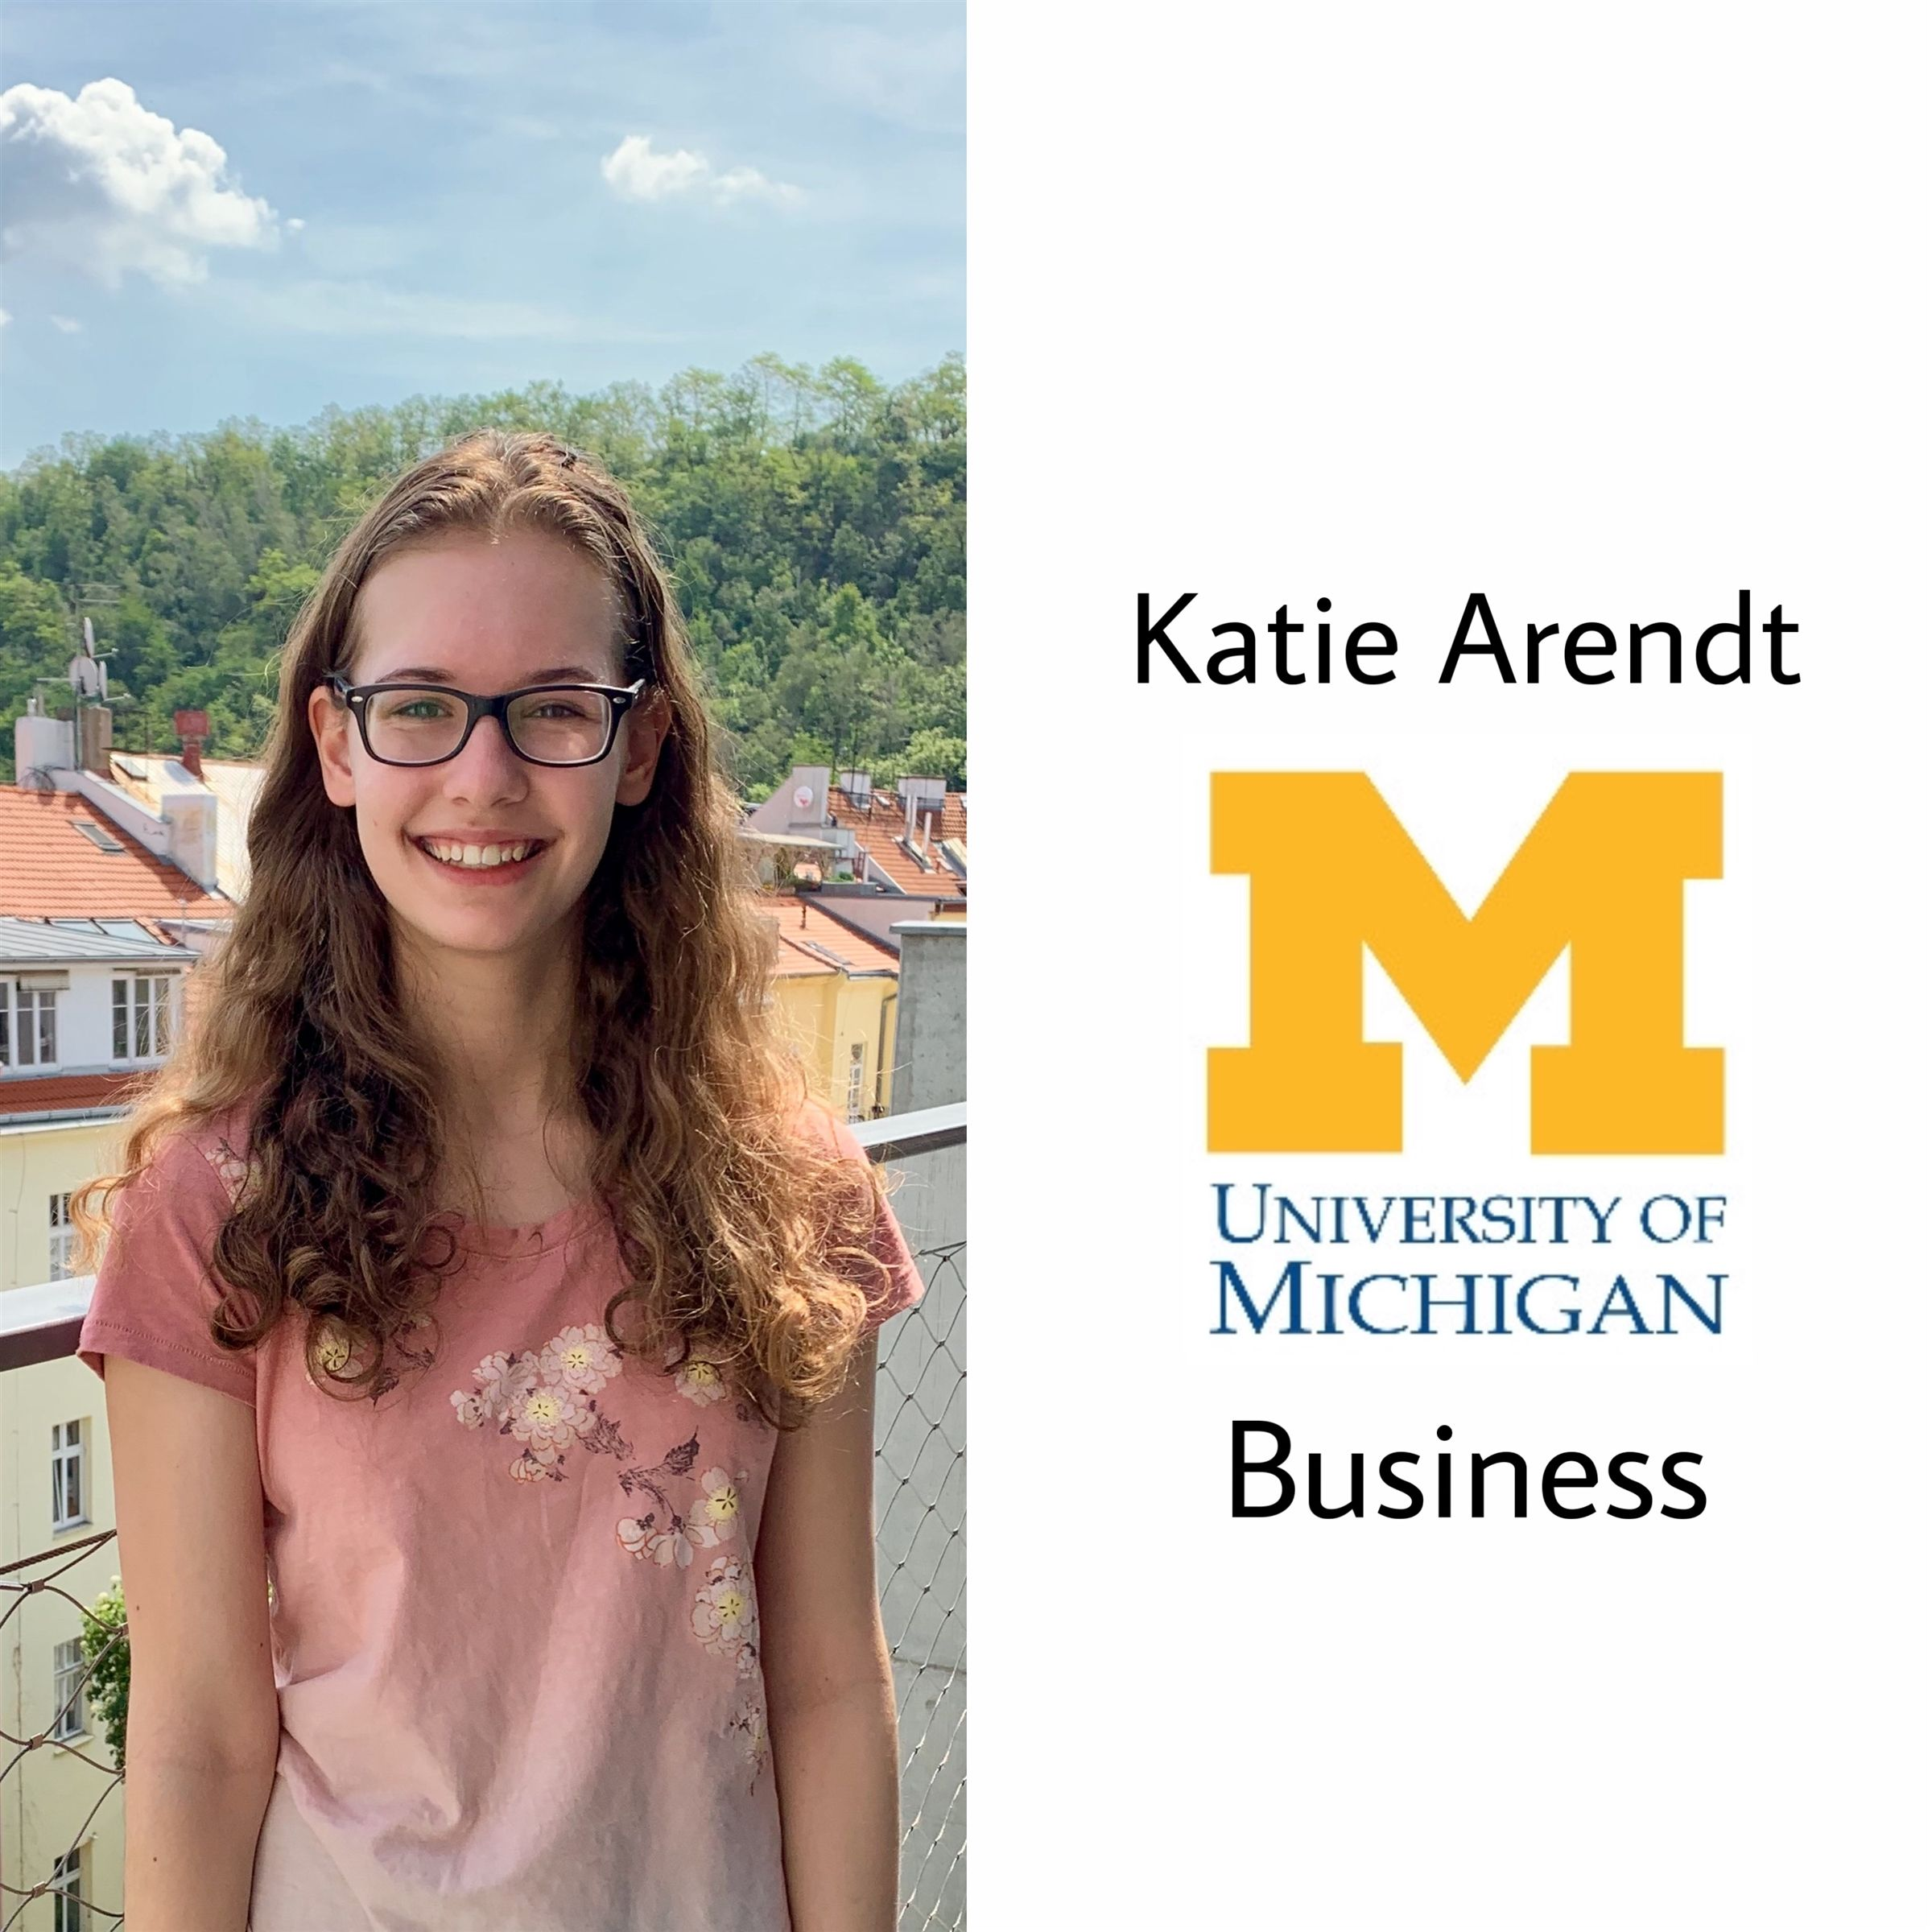 Congratulations Katie!! Another one to UMich! She will be going to the University of Michigan majoring in business! Go blue :) SO PROUD